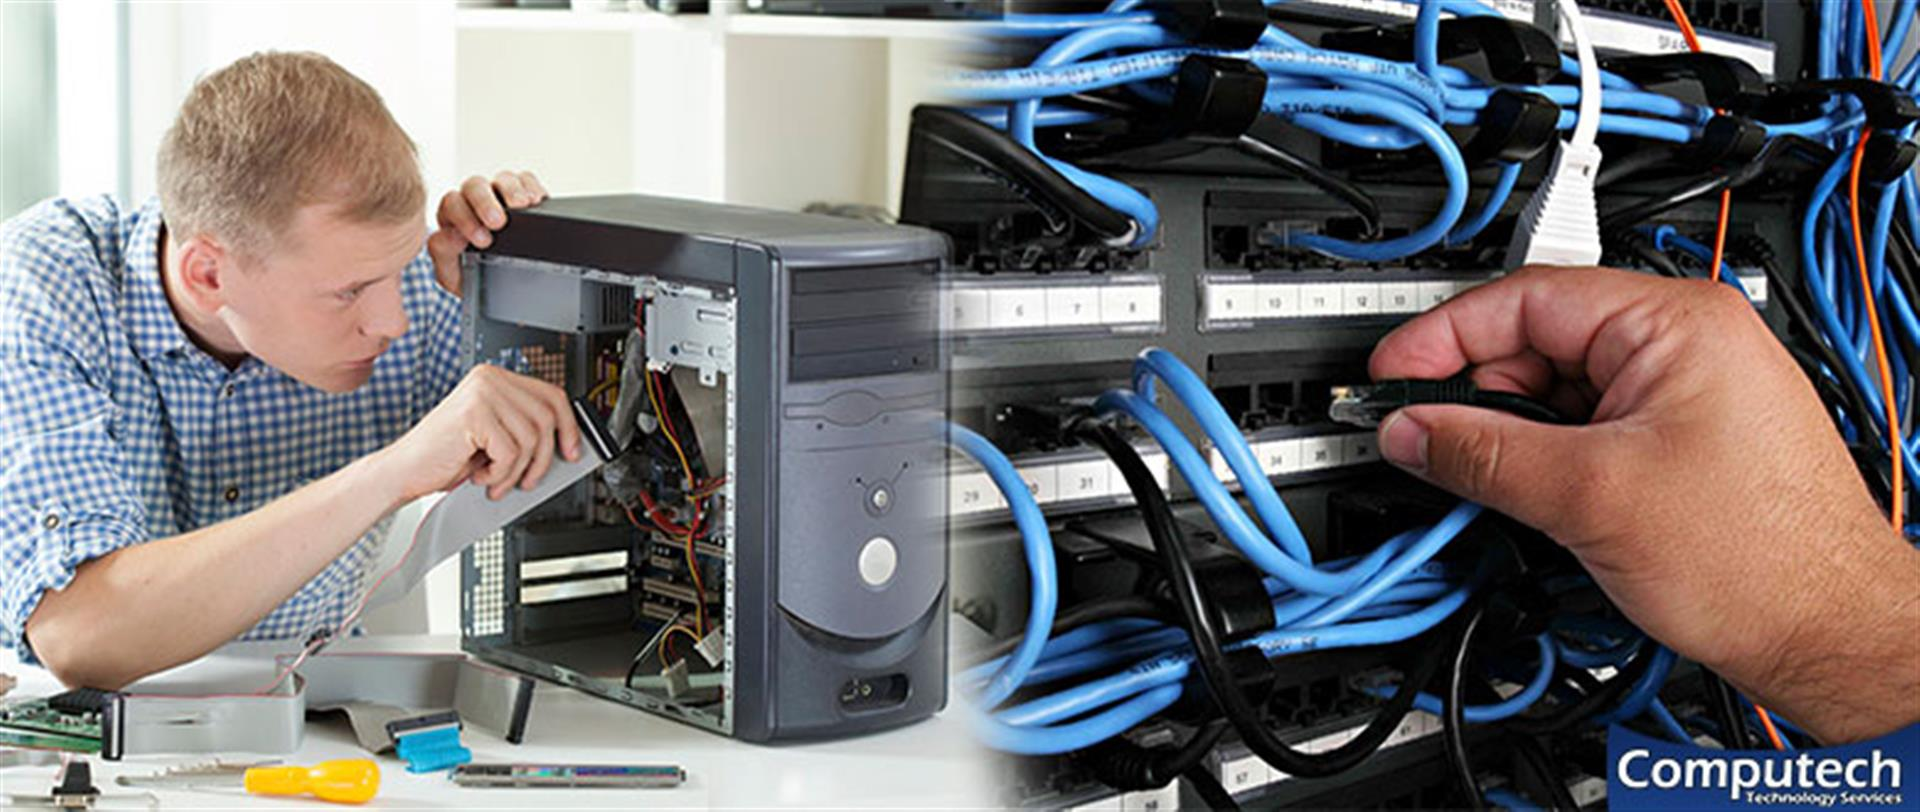 Stockbridge Georgia On Site Computer PC & Printer Repair, Network, Voice & Data Cabling Contractors